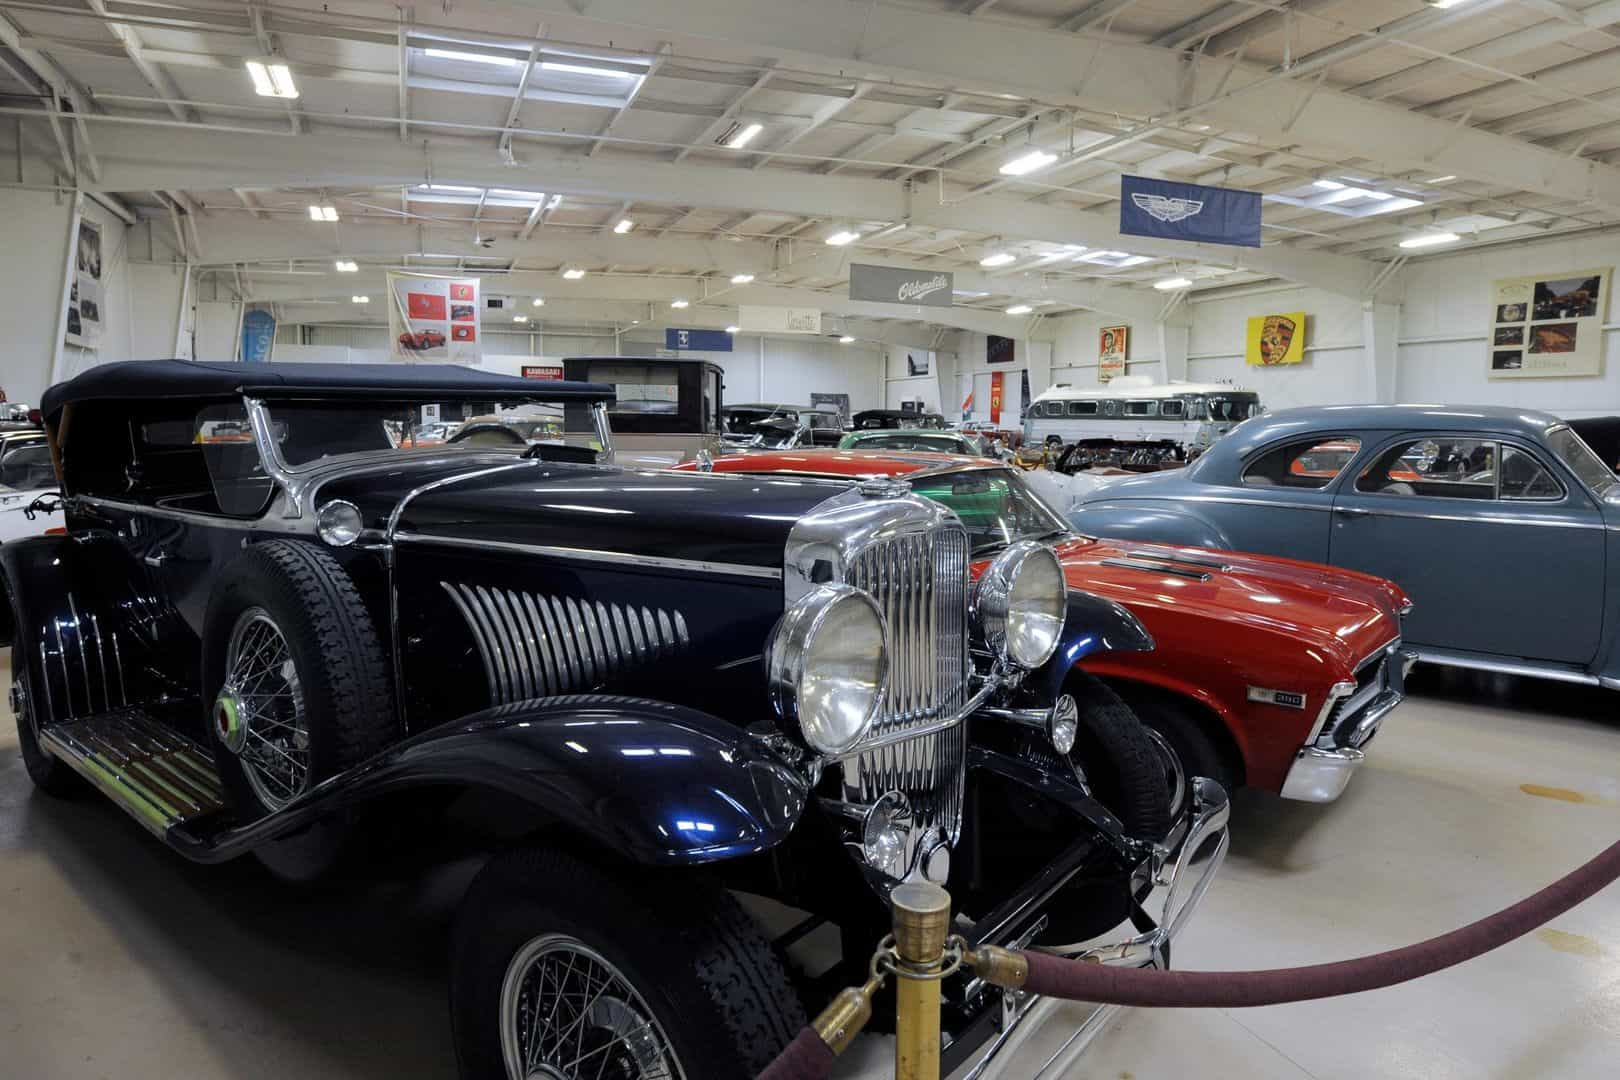 Exhibition of RM classic cars